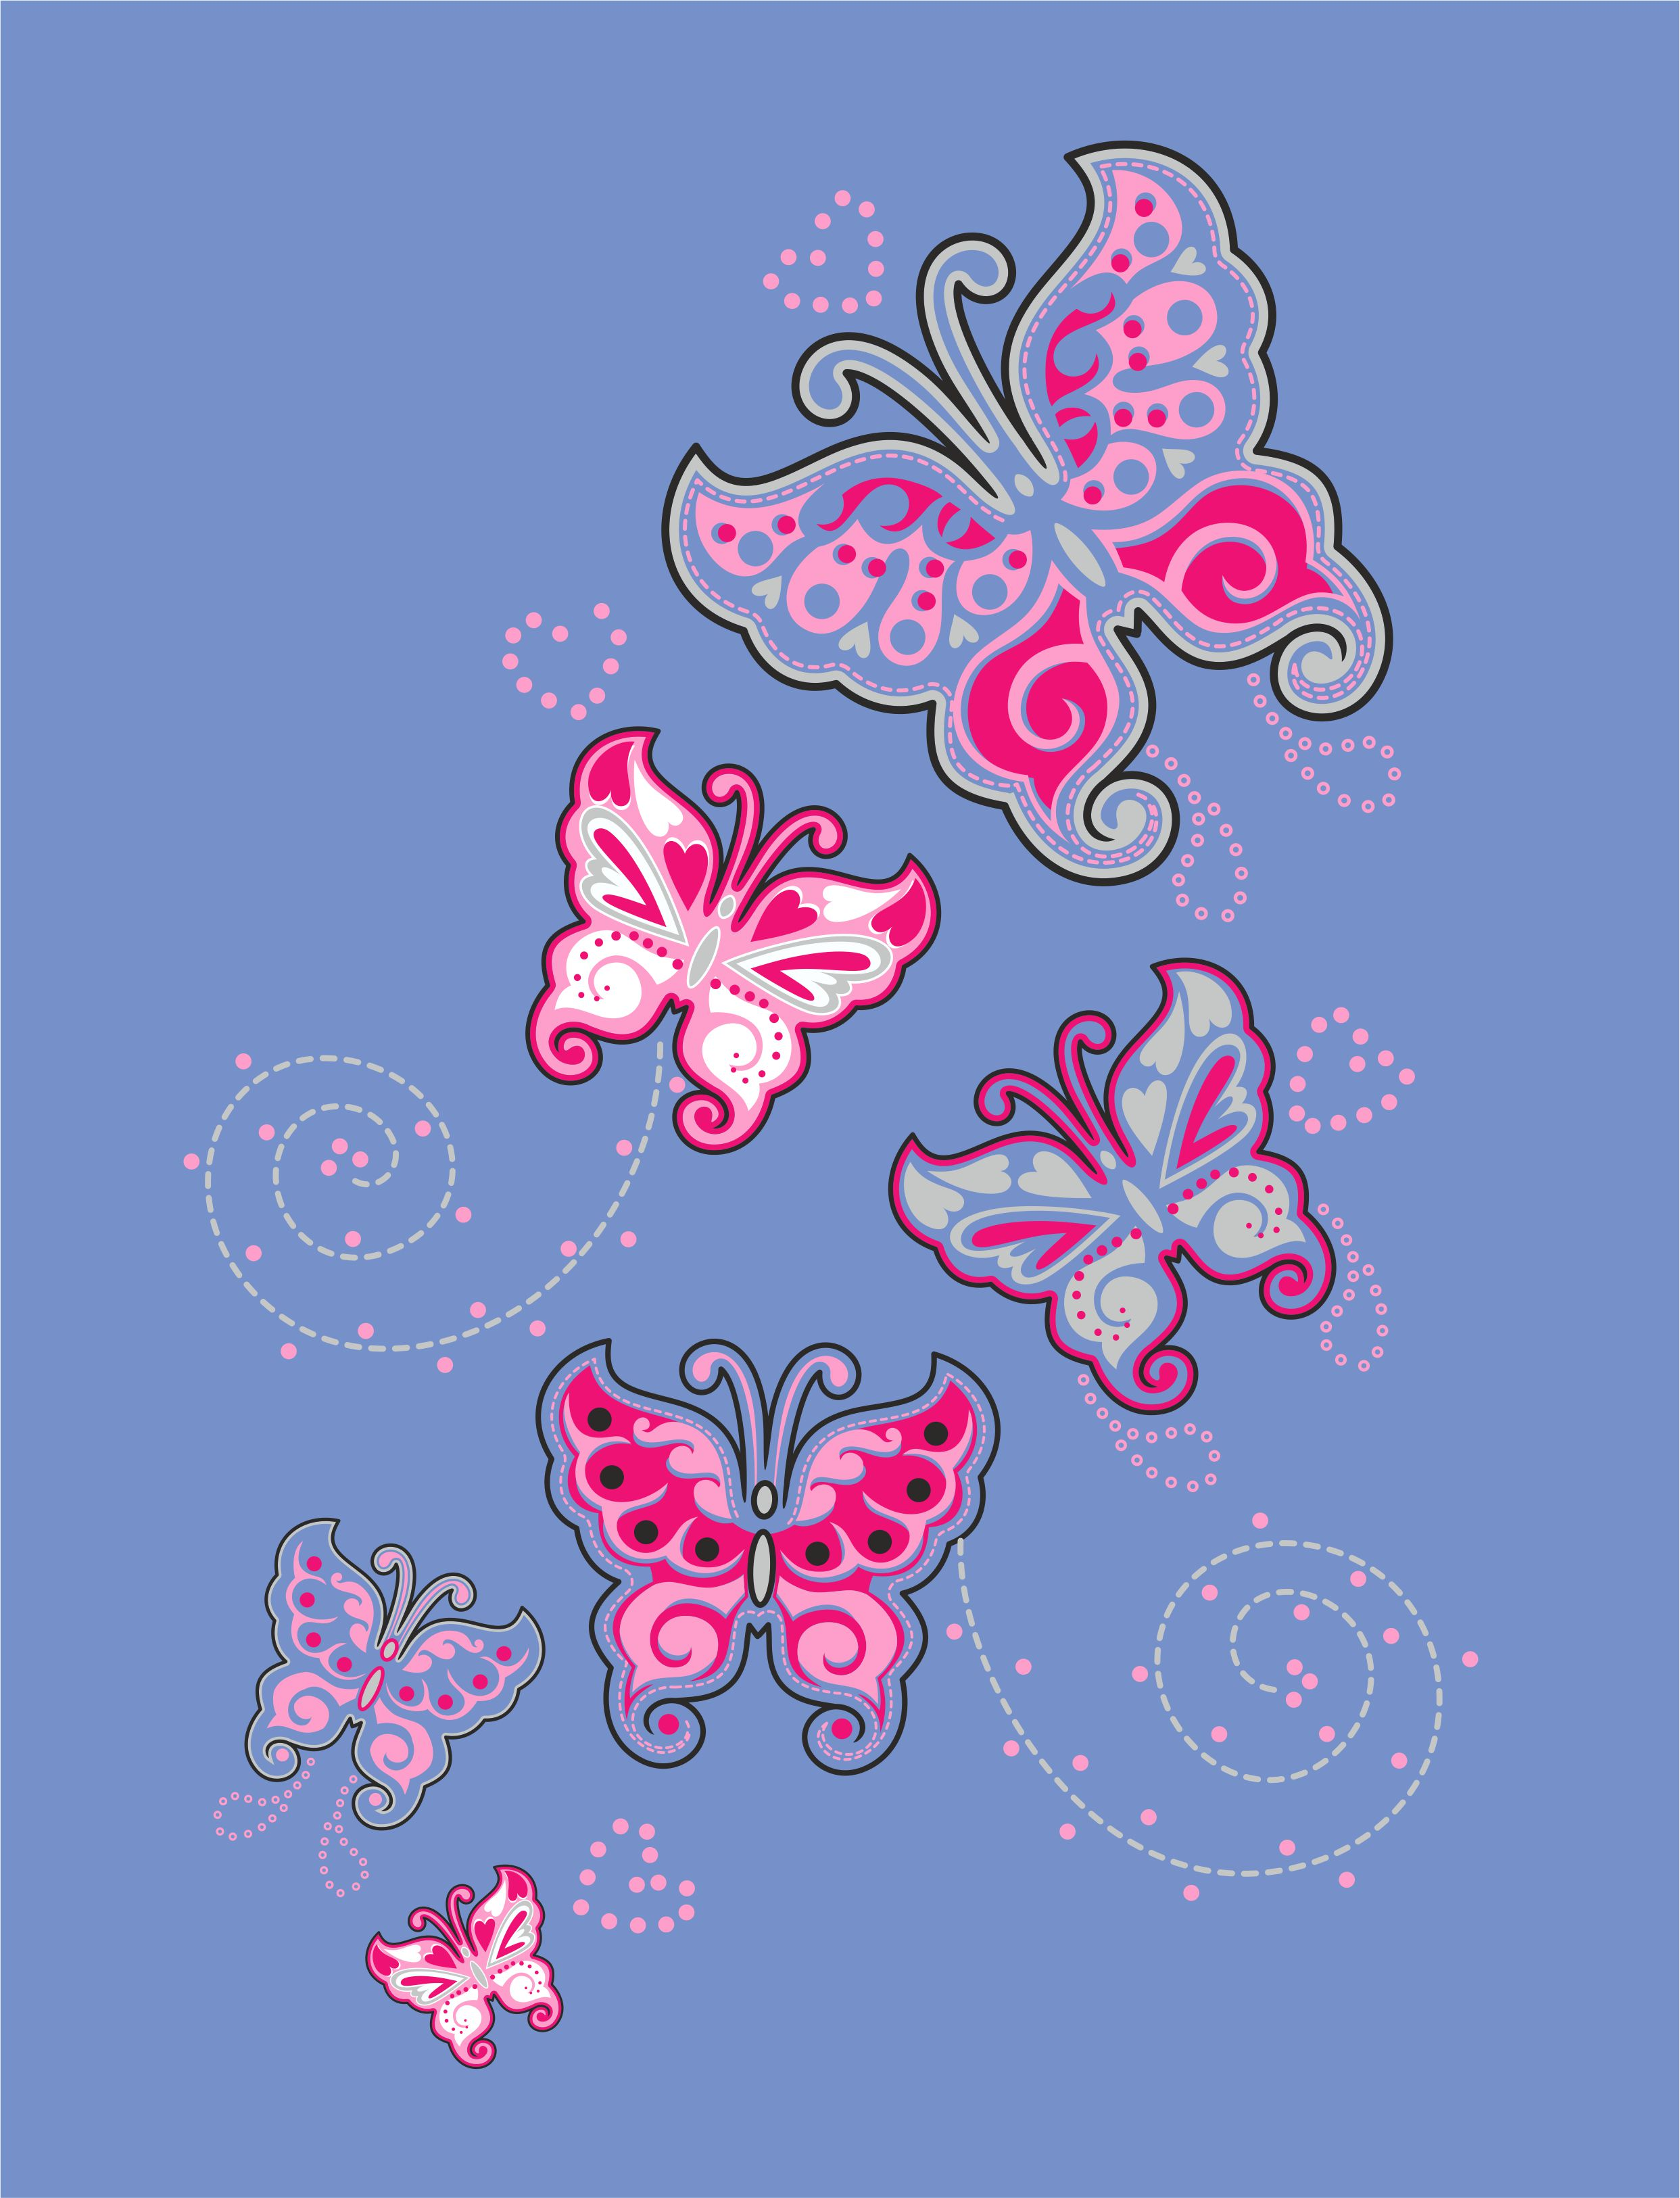 Butterfly vector image in Corel Draw